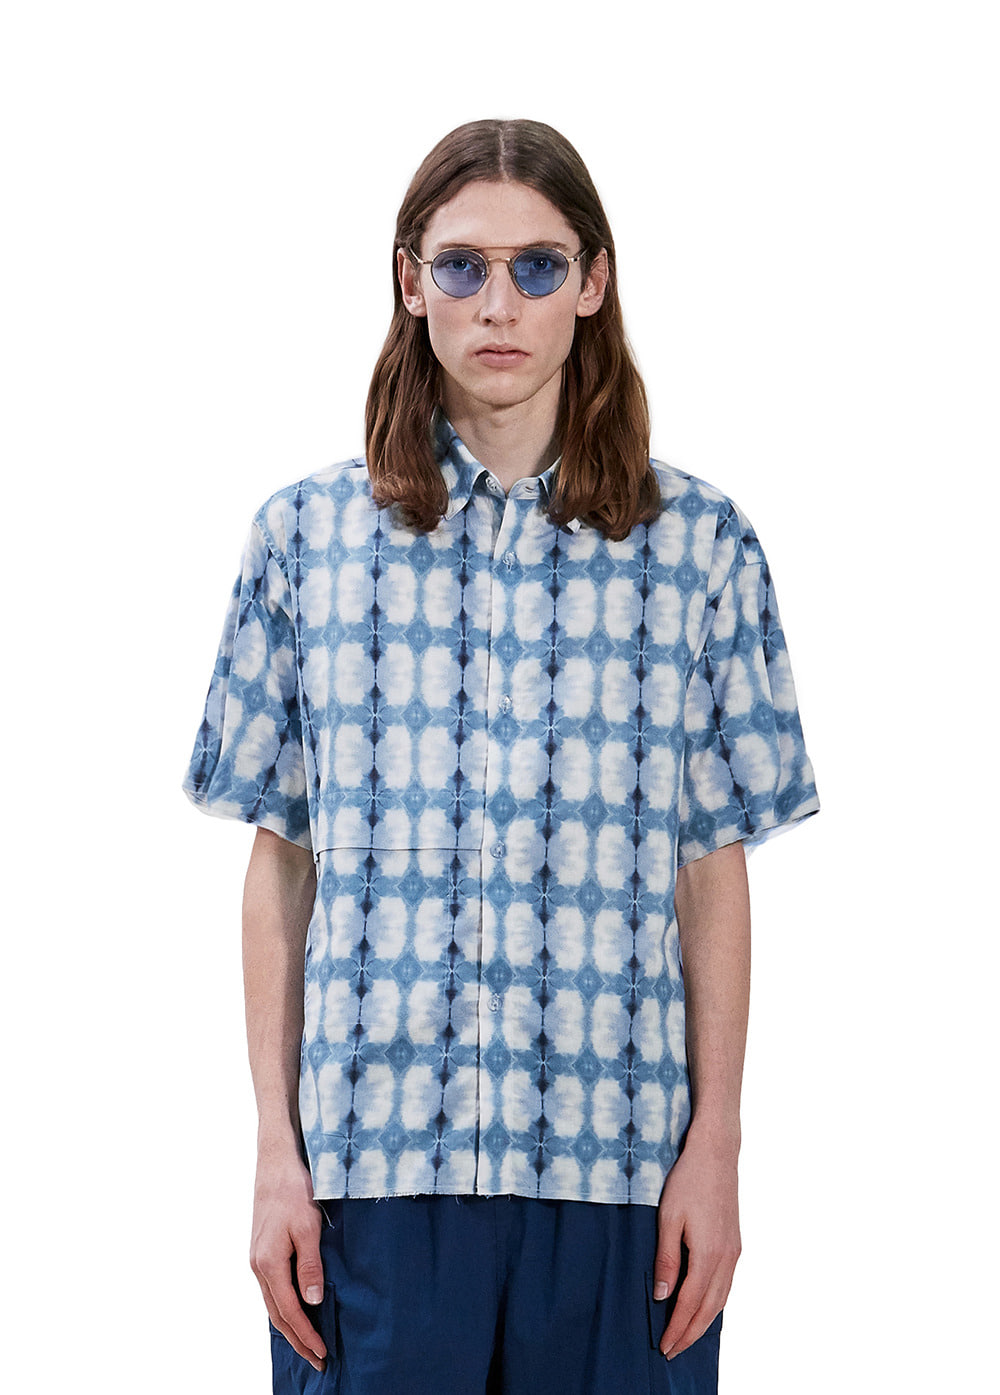 CUT-OFF SHORT SLEEVE SHIRT blue/white mariposa